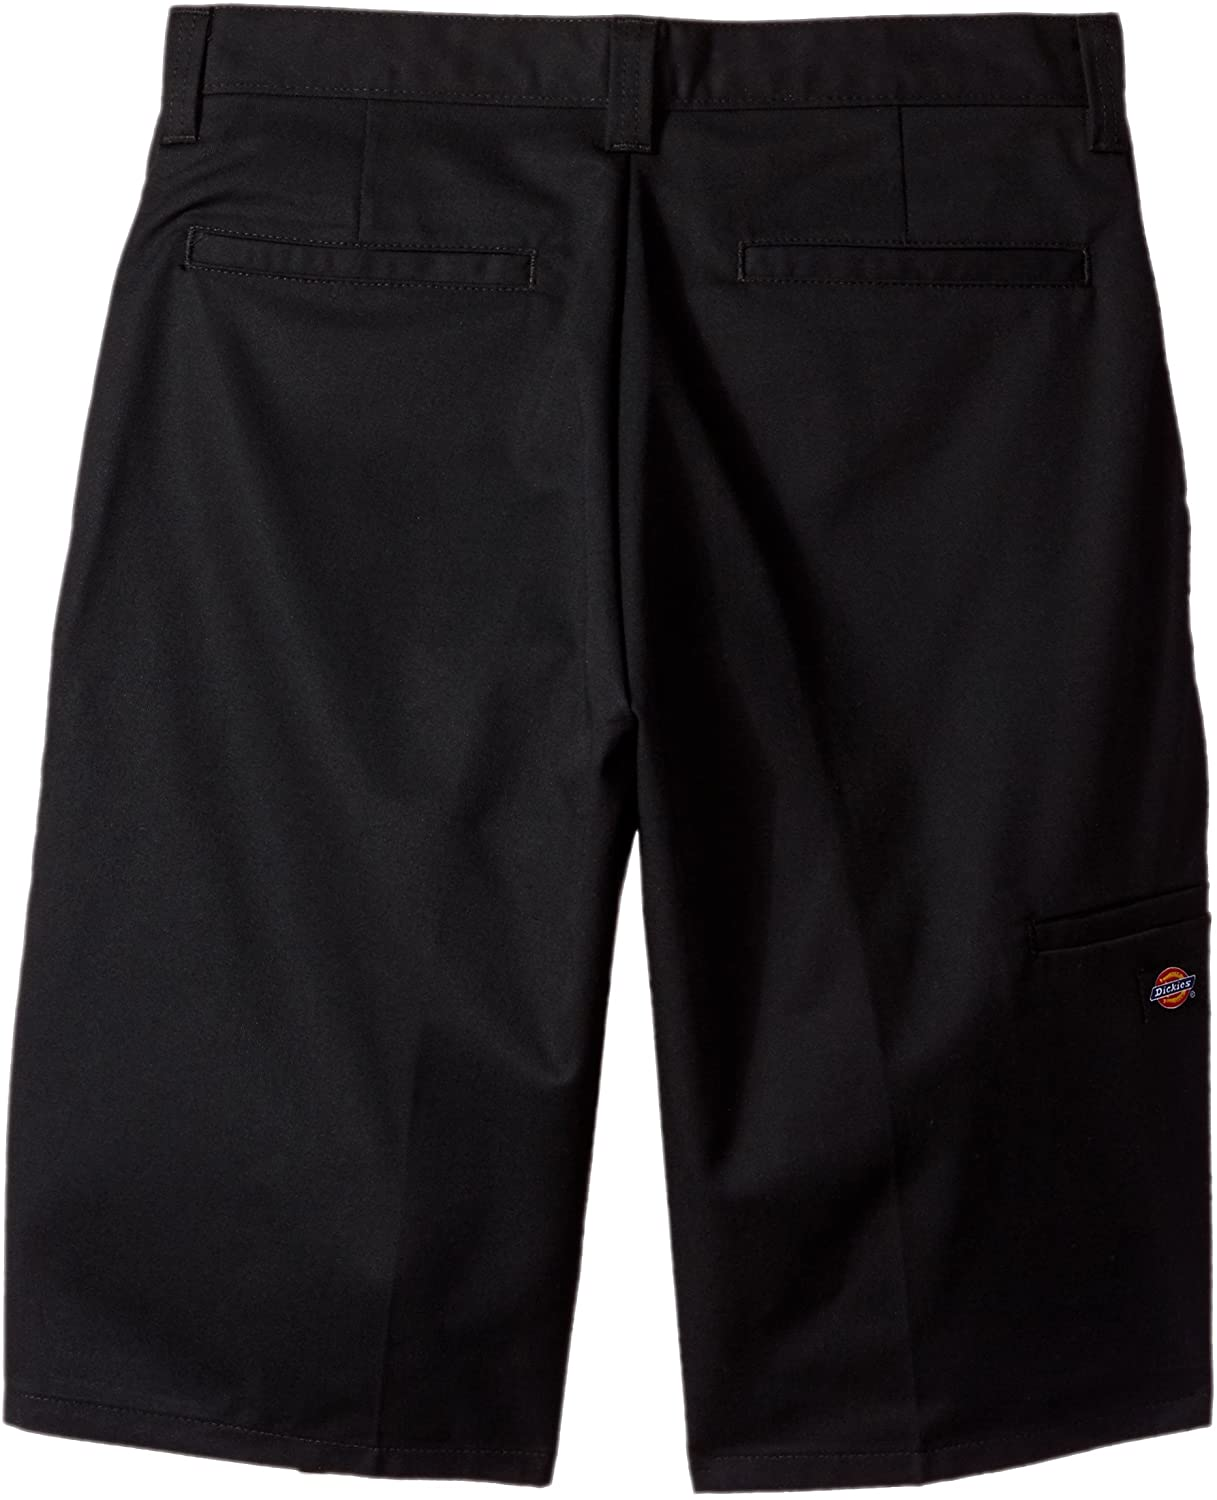 Black Dickies Occupational Workwear LR642BK Polyester//Cotton Relaxed Fit Mens Premium Industrial Multi-Use Pocket Short with Hidden Snap Closure